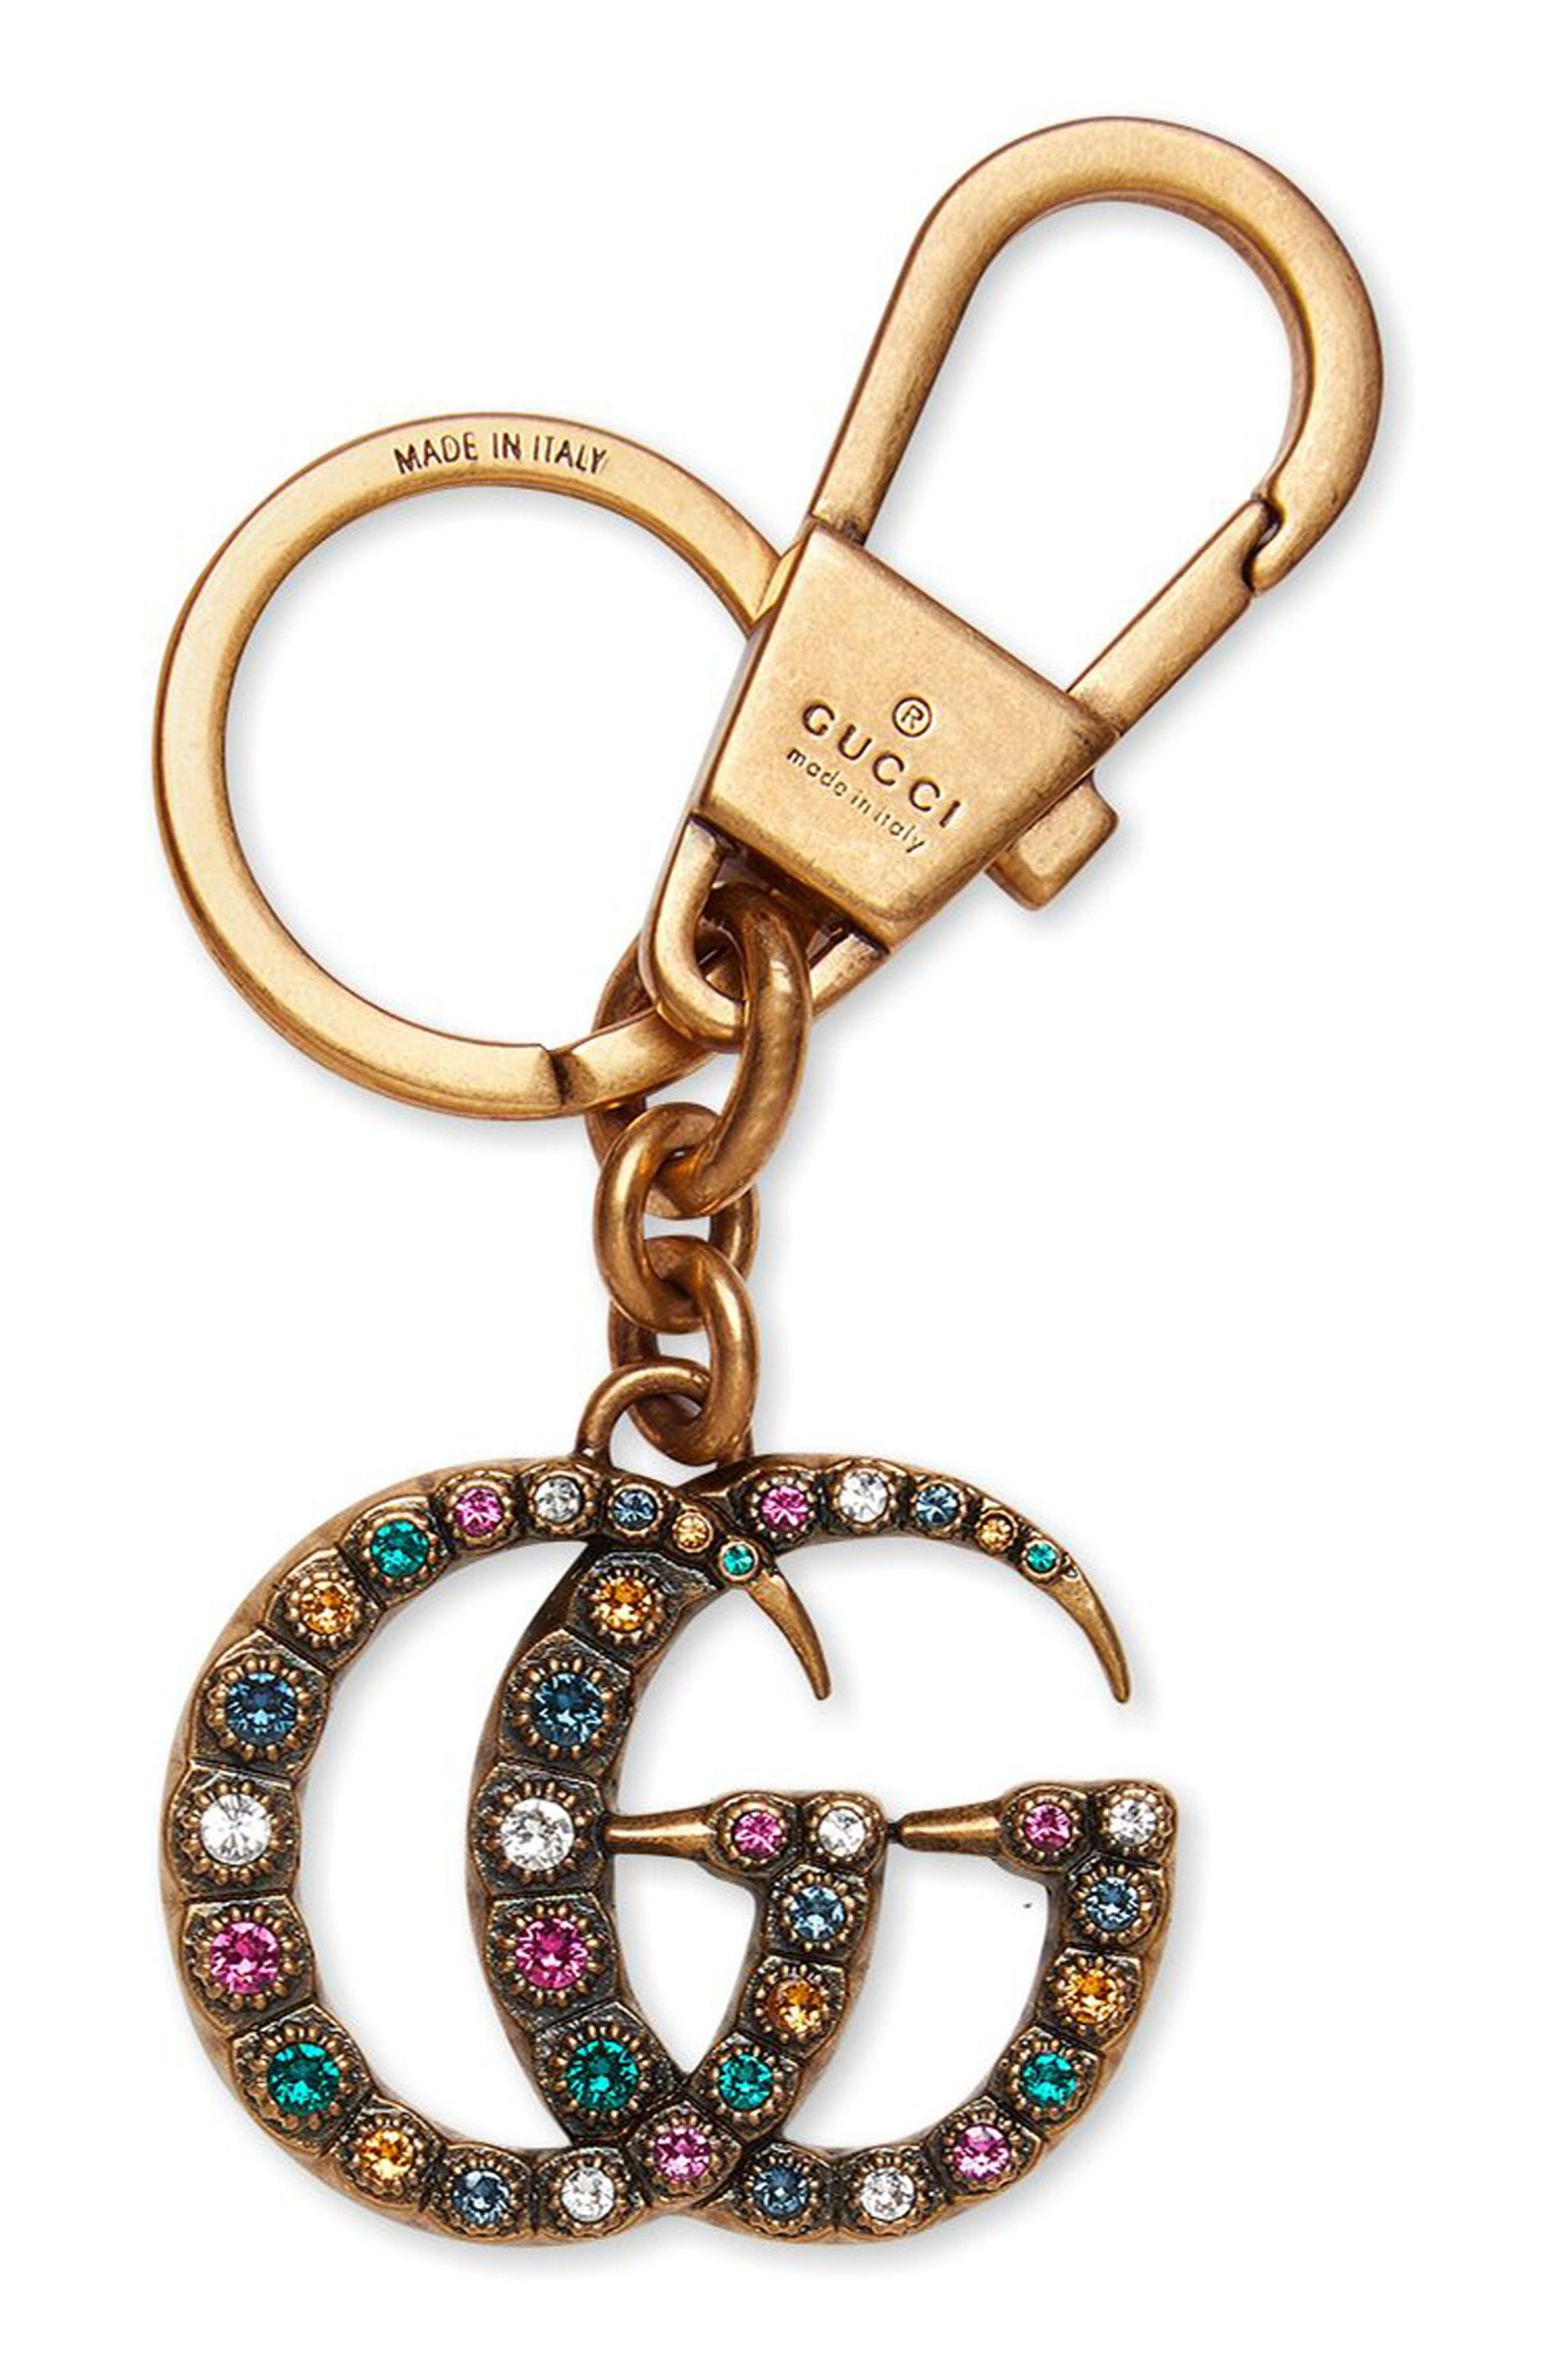 5032f4d5721 Gucci Crystal Embellished Double-G Bag Charm